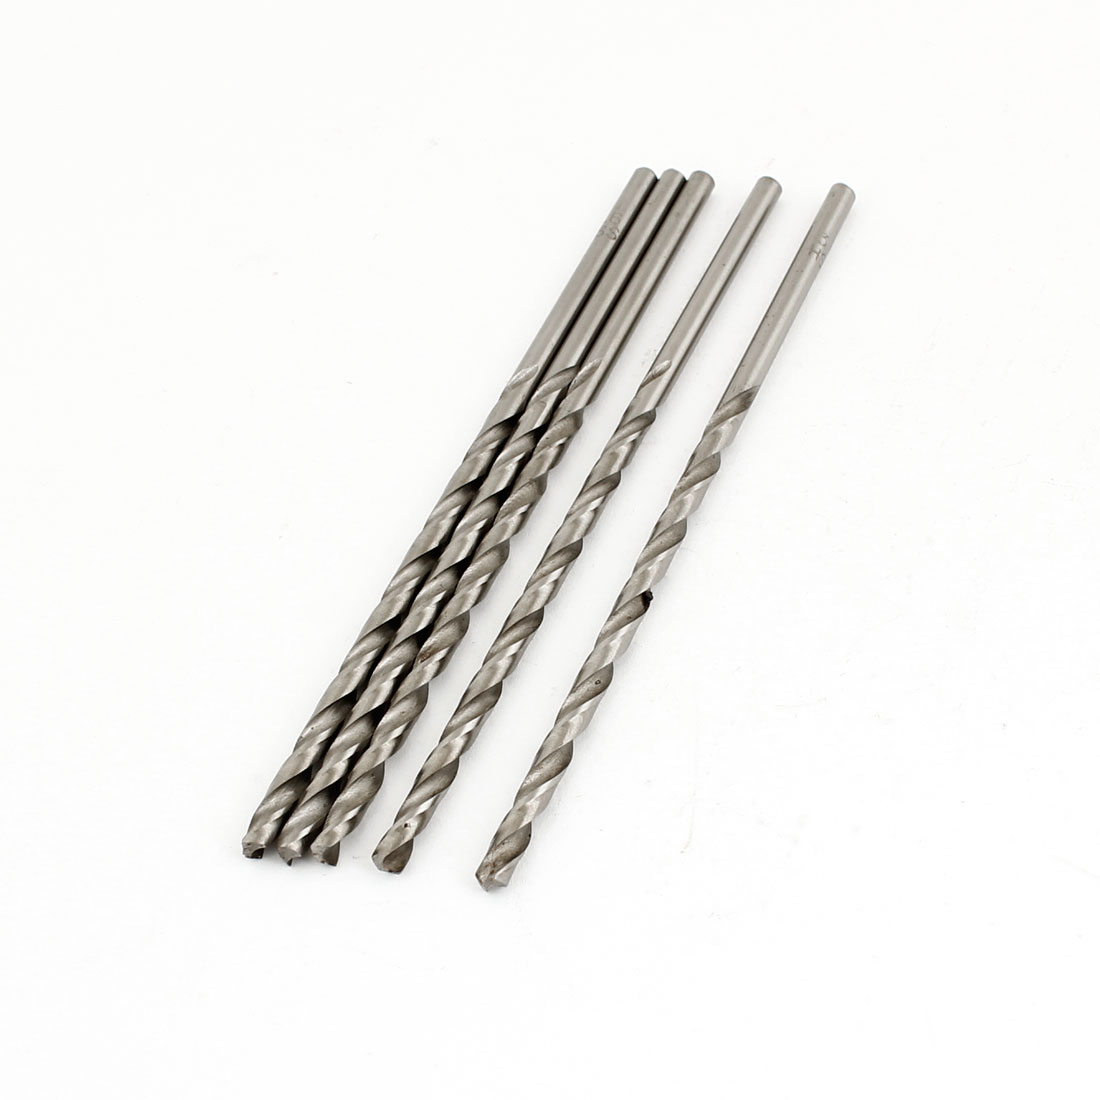 5PCS Split Point Straight Shank Fully Ground Spiral Twist Drill Bits 4.4mm Dia